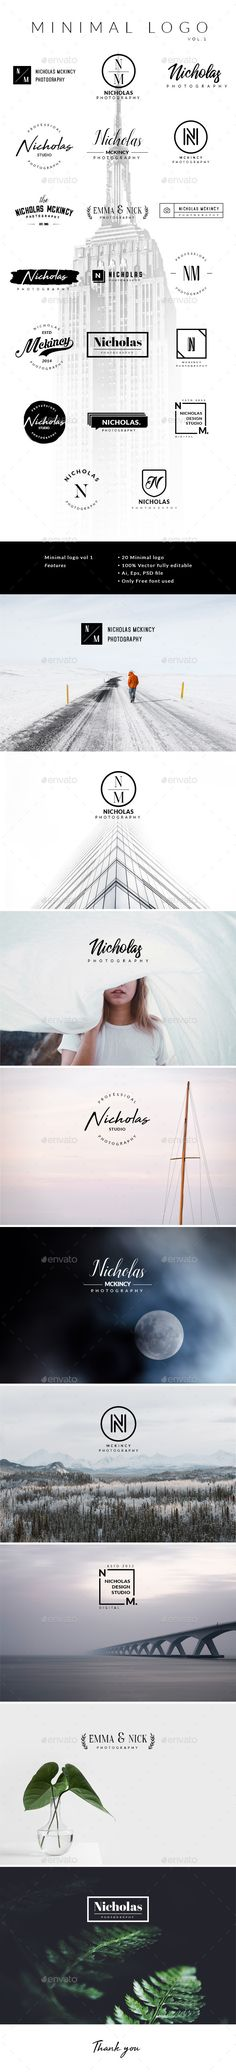 Minimal Logo Vol.1 Features] 100% Resizable, 100% Text is editable, Only free font used, Color is easily changed, The background image preview are not included Web Design, Best Logo Design, Graphic Design, Logan, T Shirt Design Template, Wedding Typography, Hipster Logo, Luxury Logo, Elegant Logo